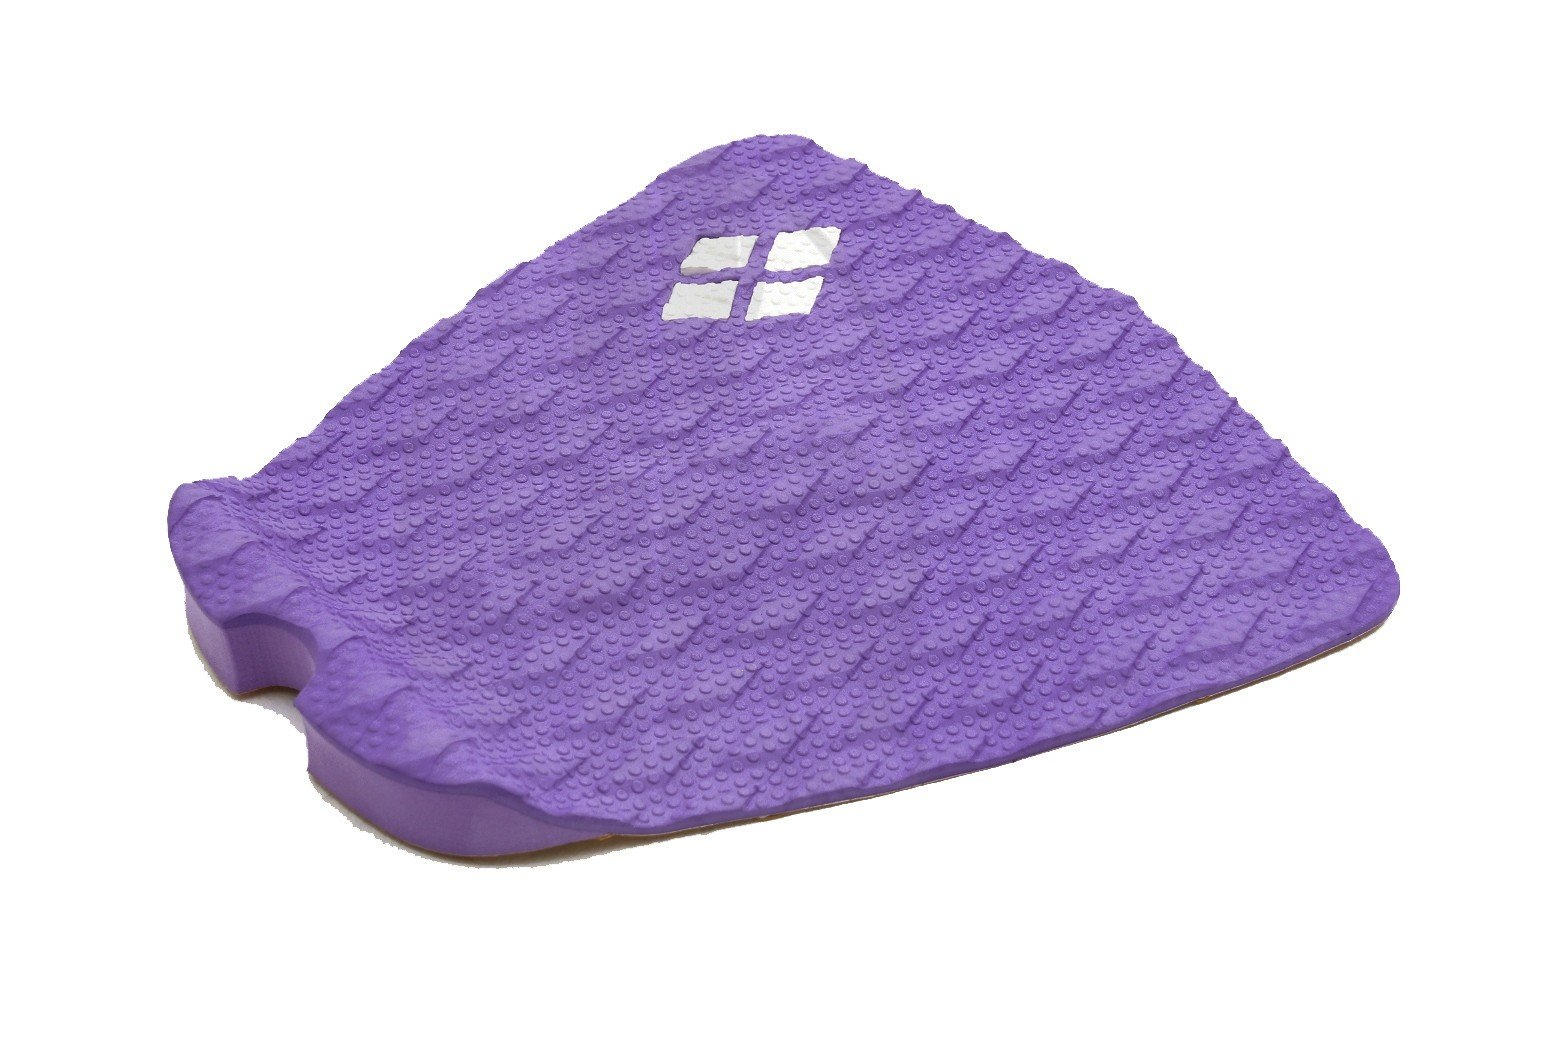 Deck Surf Thermo Rubber Sticky Squash Roxo Prancharia